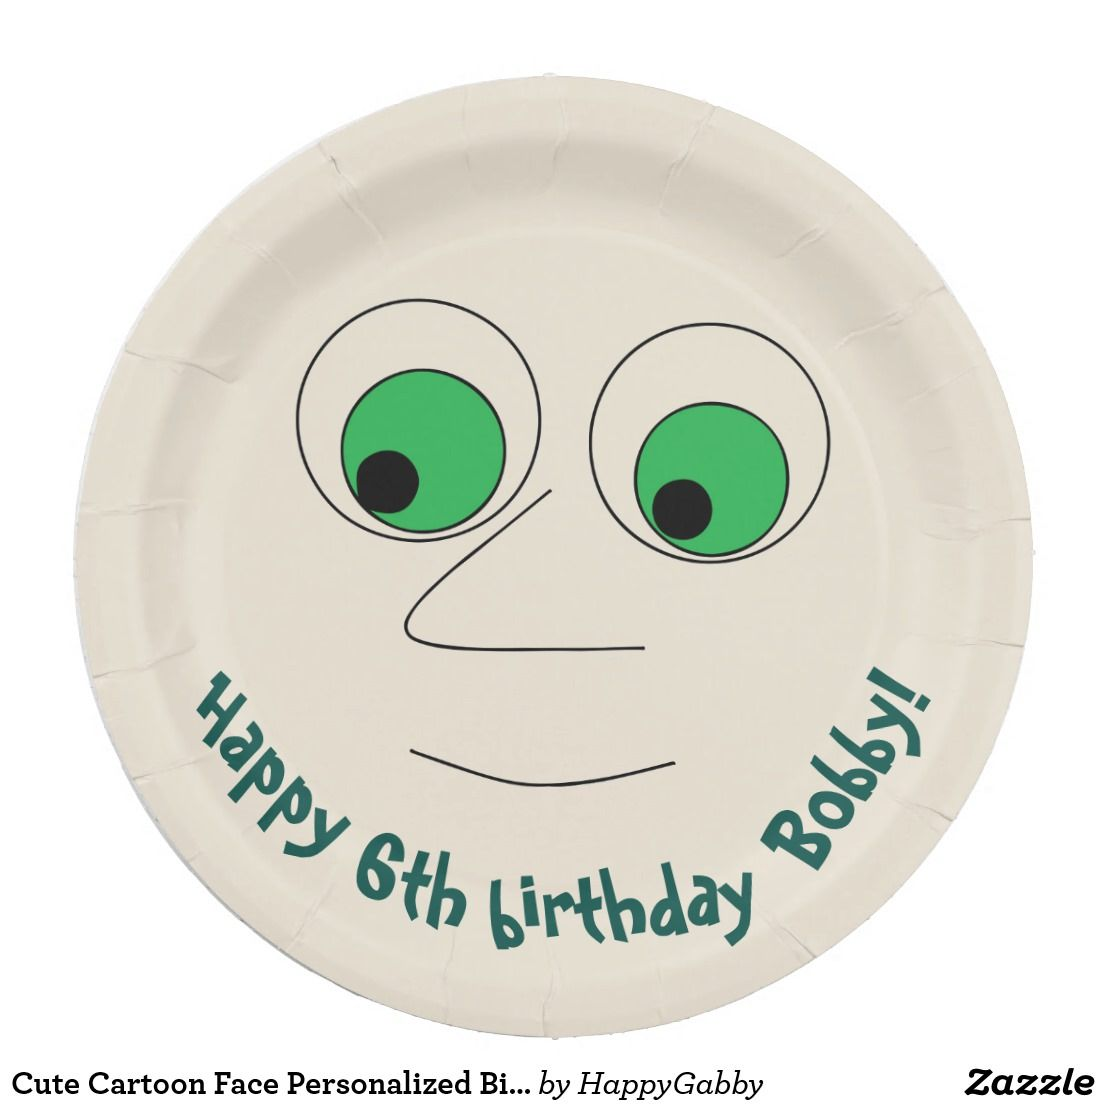 Cute Cartoon Face Personalized Birthday Paper Plate  sc 1 st  Pinterest & Cute Cartoon Face Personalized Birthday Paper Plate | Creative ...